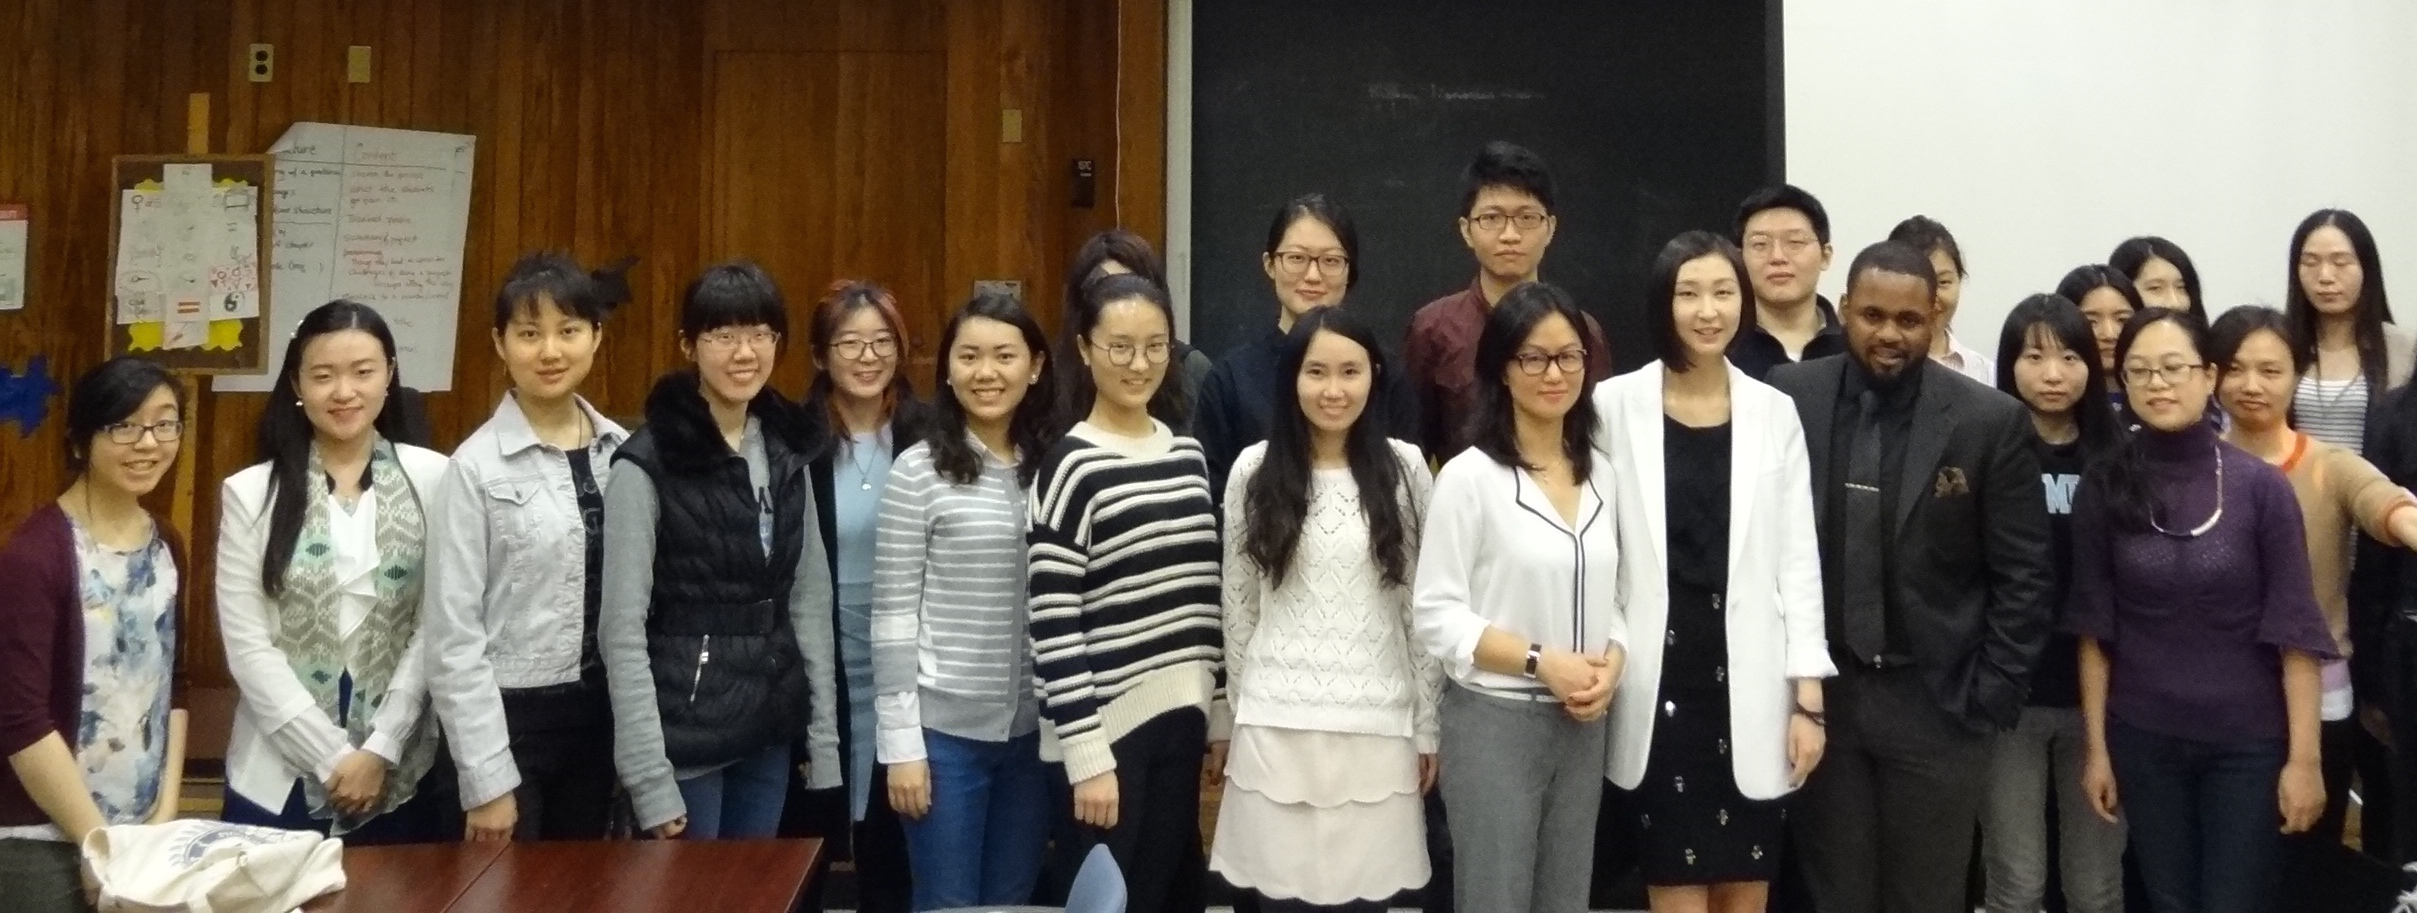 interEDGE Co-founder Di Hu Speaks to Chinese students on cross-cultural communication and career success